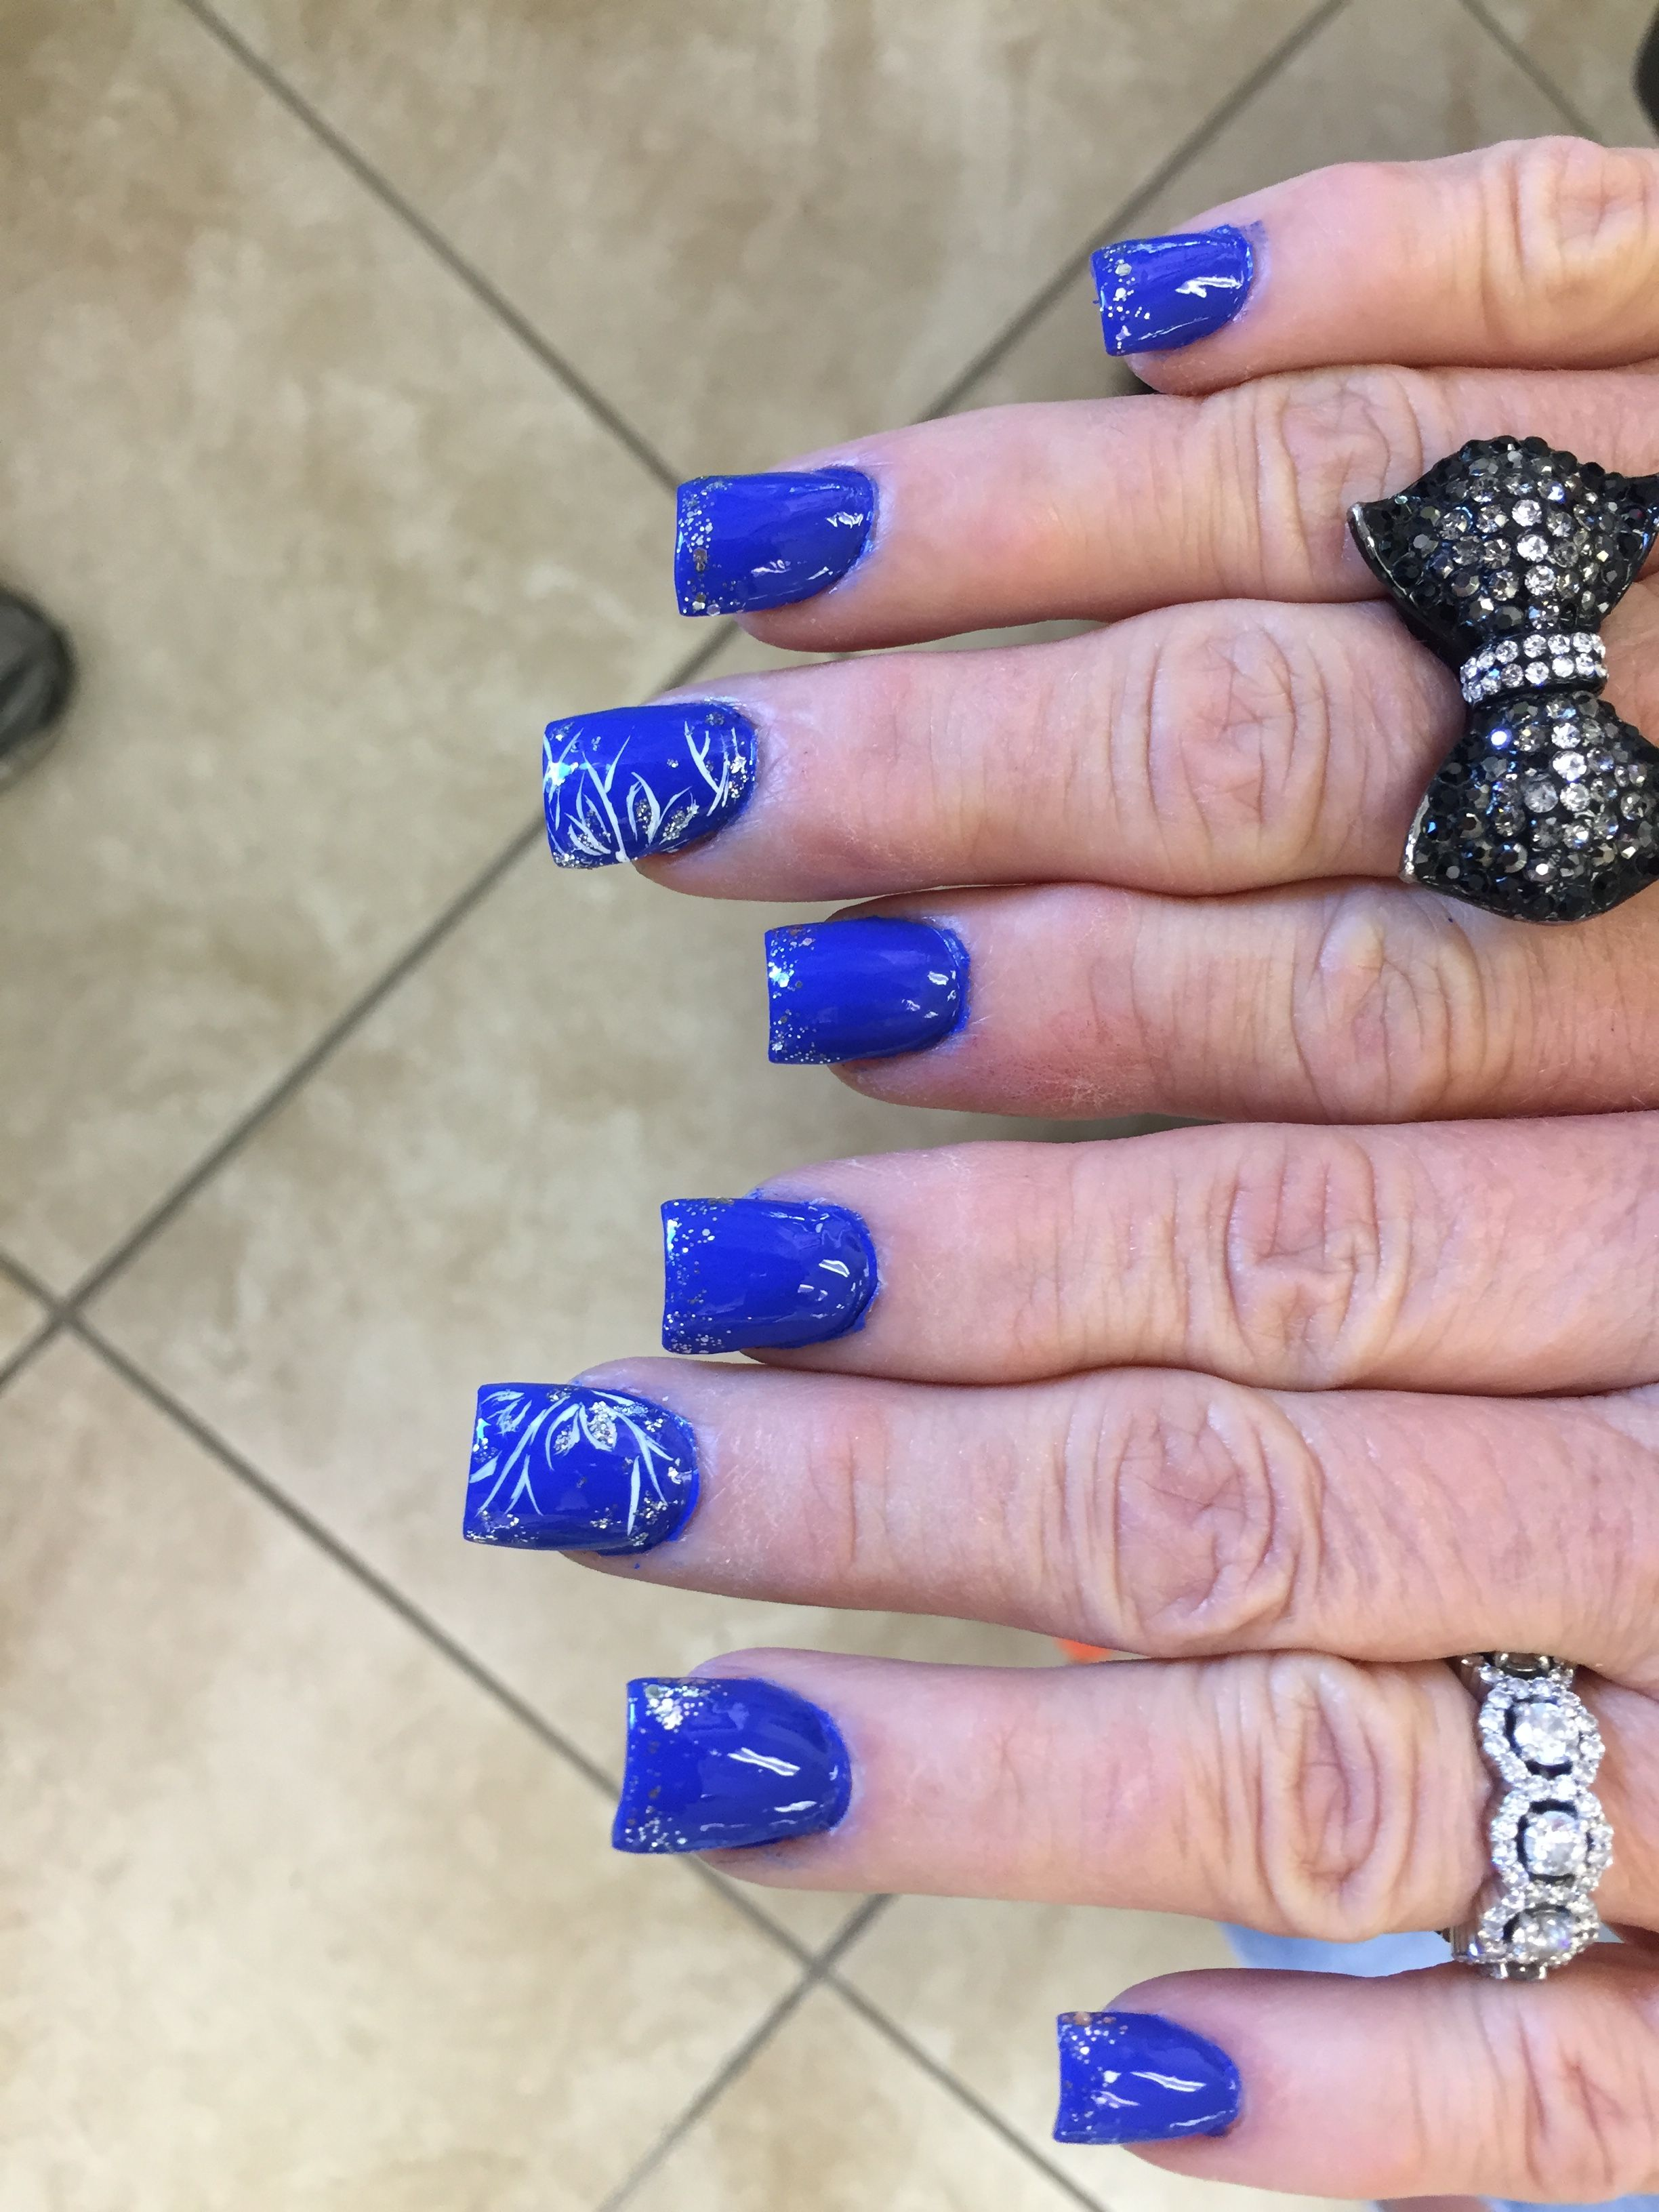 Midnight Fantasy From Top Nail Salon Linda Is The Best